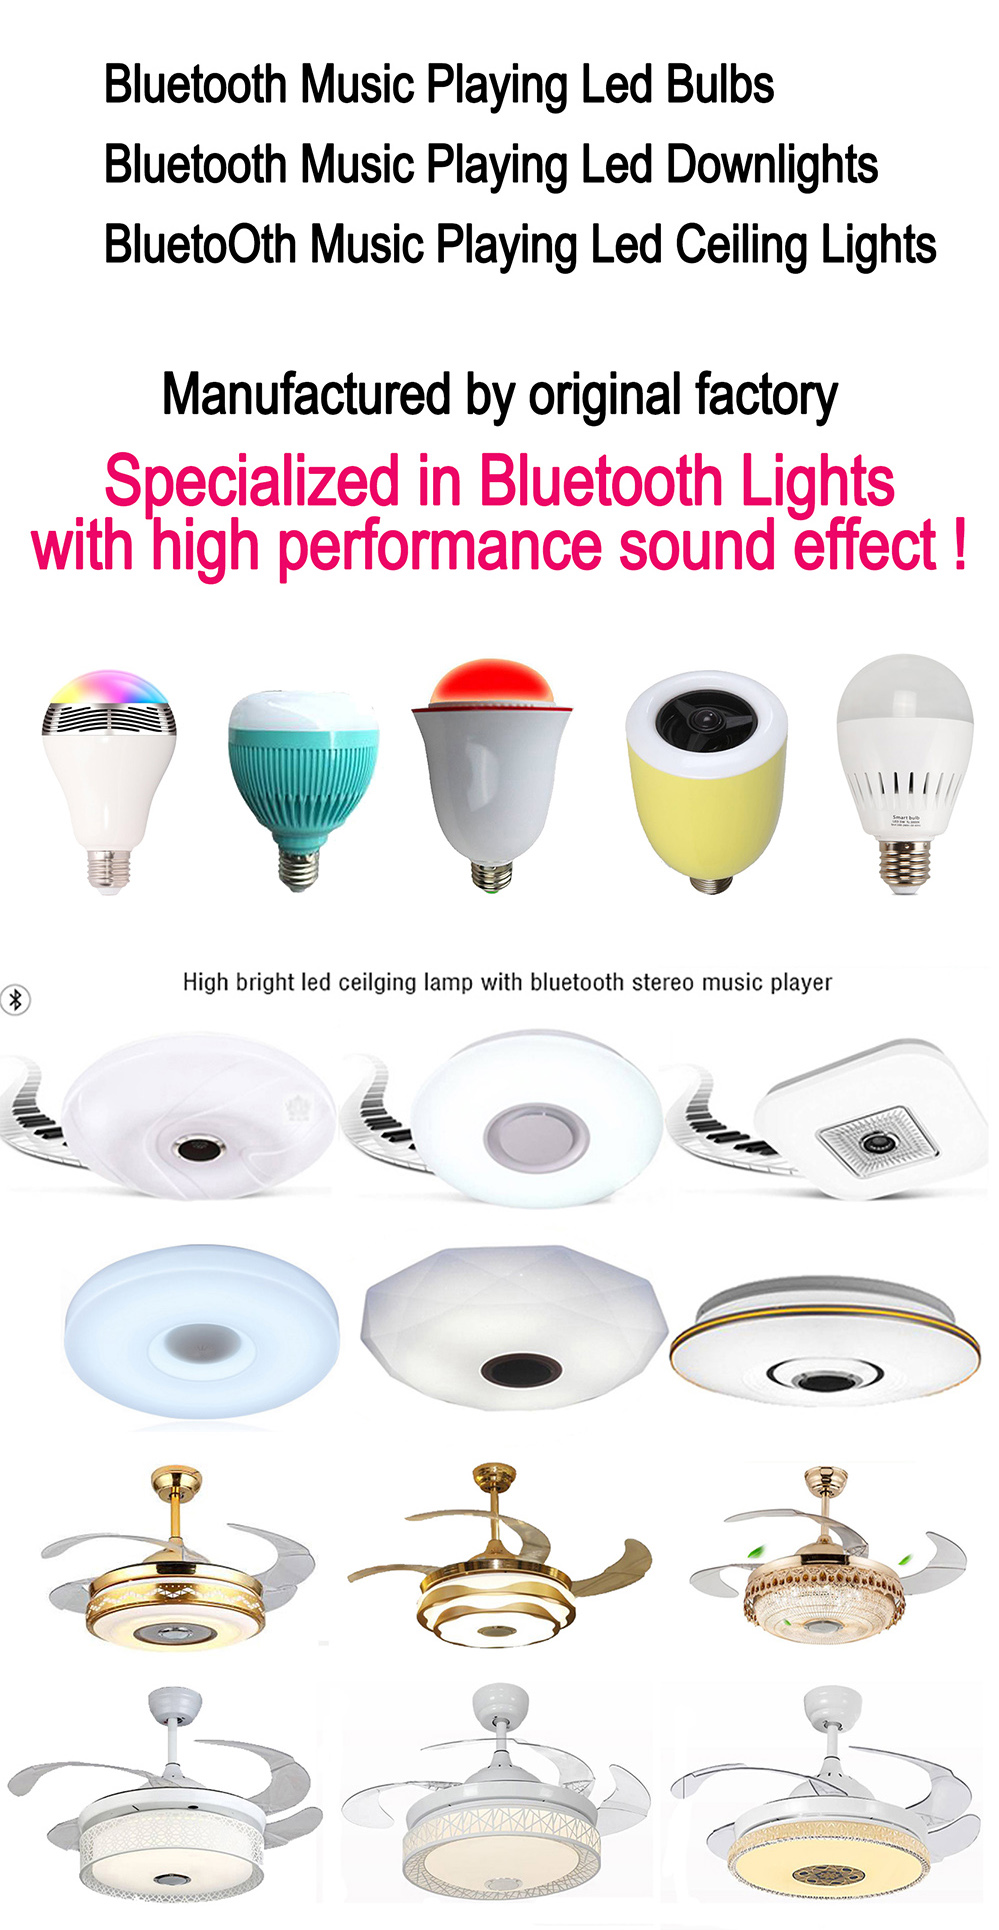 bluetooth led light fan.jpg